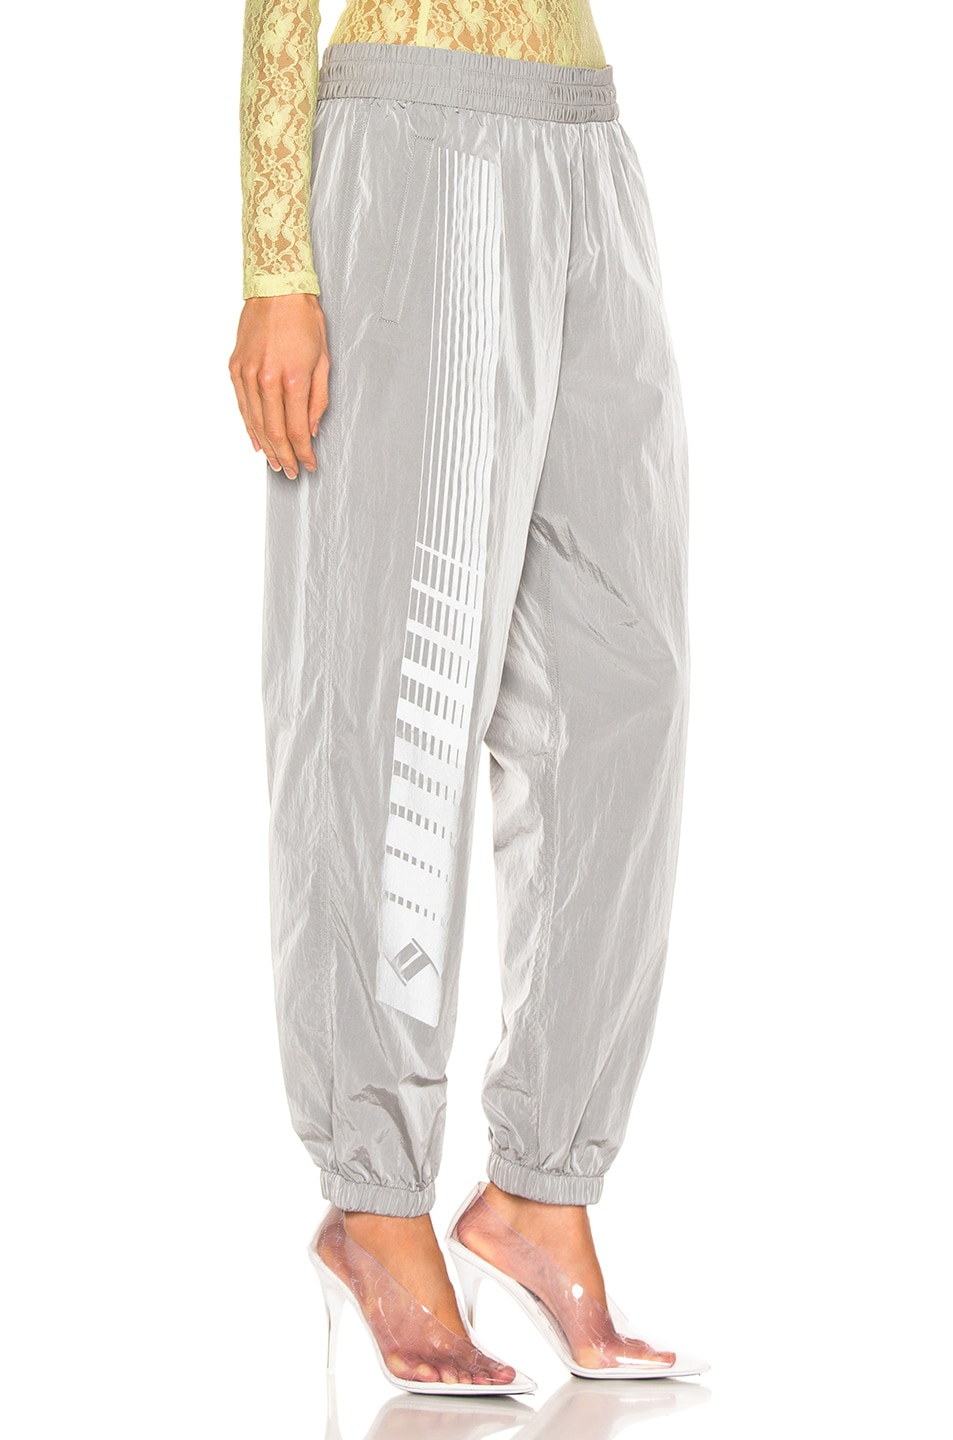 Image 2 of T by Alexander Wang Reflective Print Pant in Silver